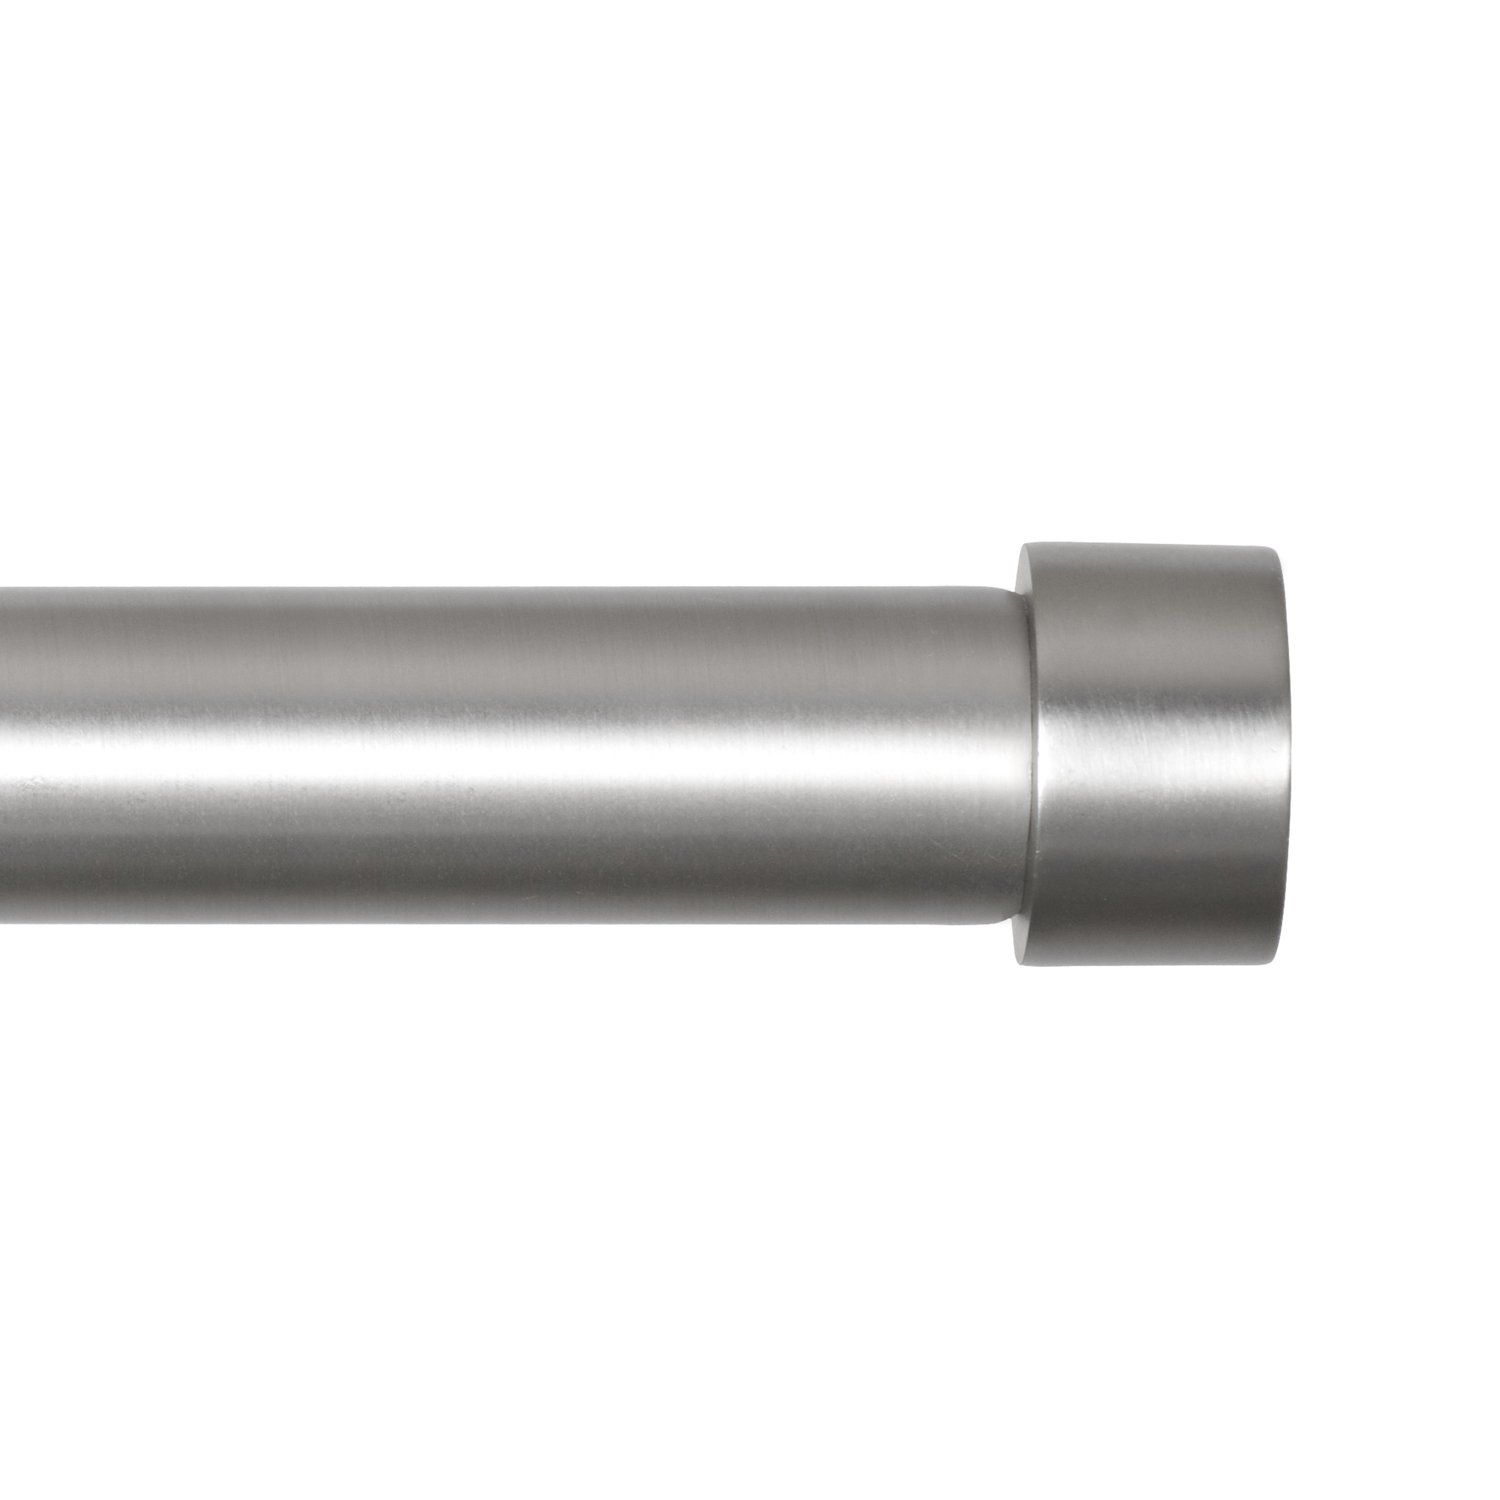 Umbra Cappa Brushed Nickel Curtain Rod A Modern Adjustable Curtain Rod Extends From 36 To 72 Inches A Curtain Rods Drapery Rods Modern Curtain Rods